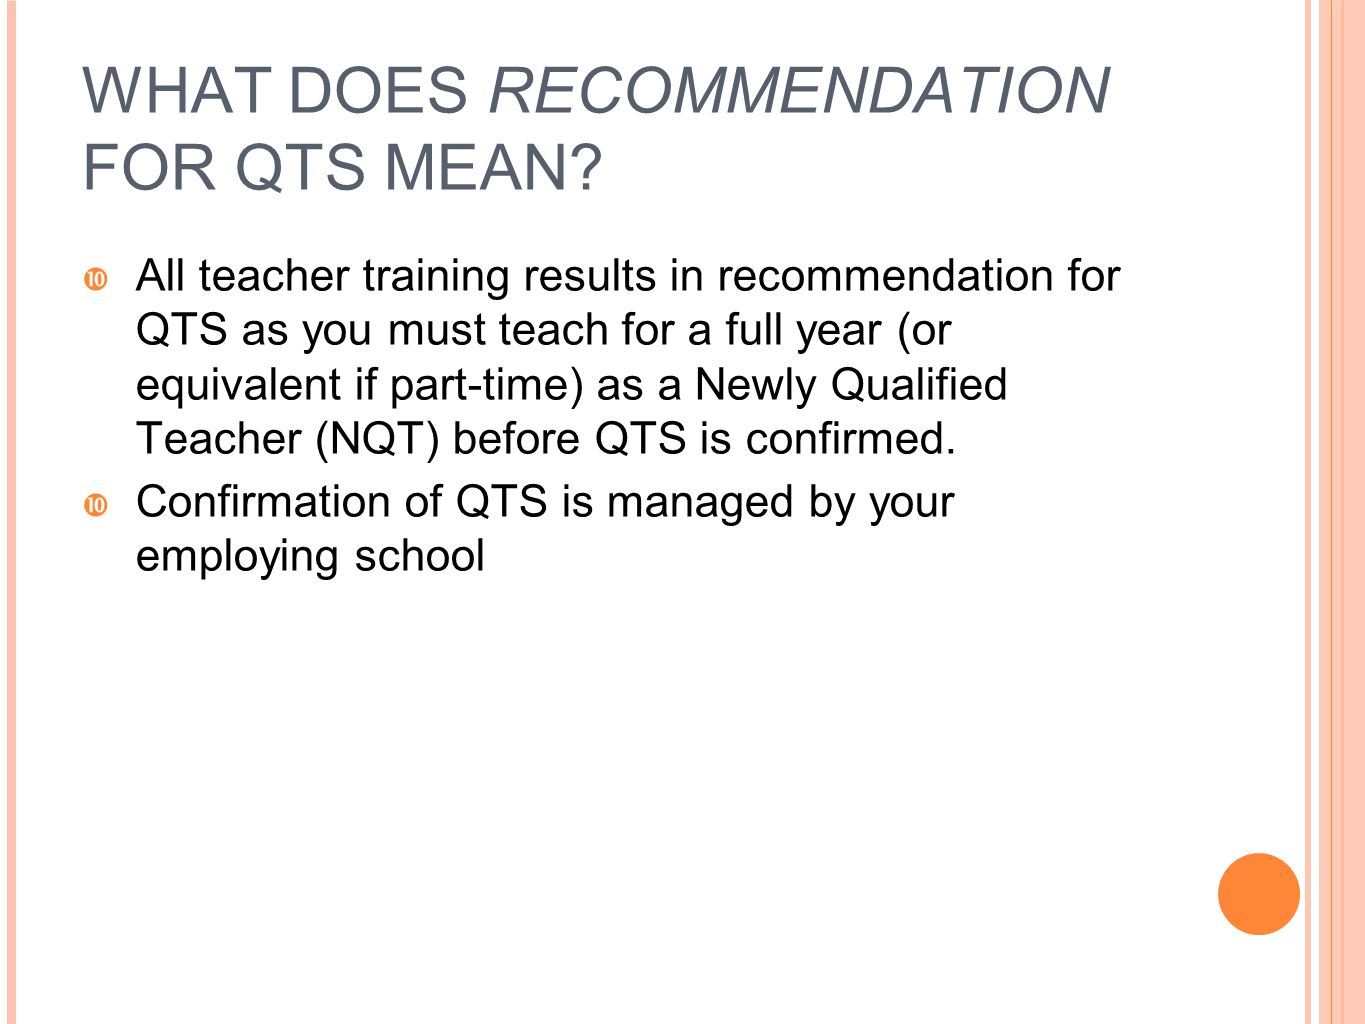 WHAT DOES RECOMMENDATION FOR QTS MEAN